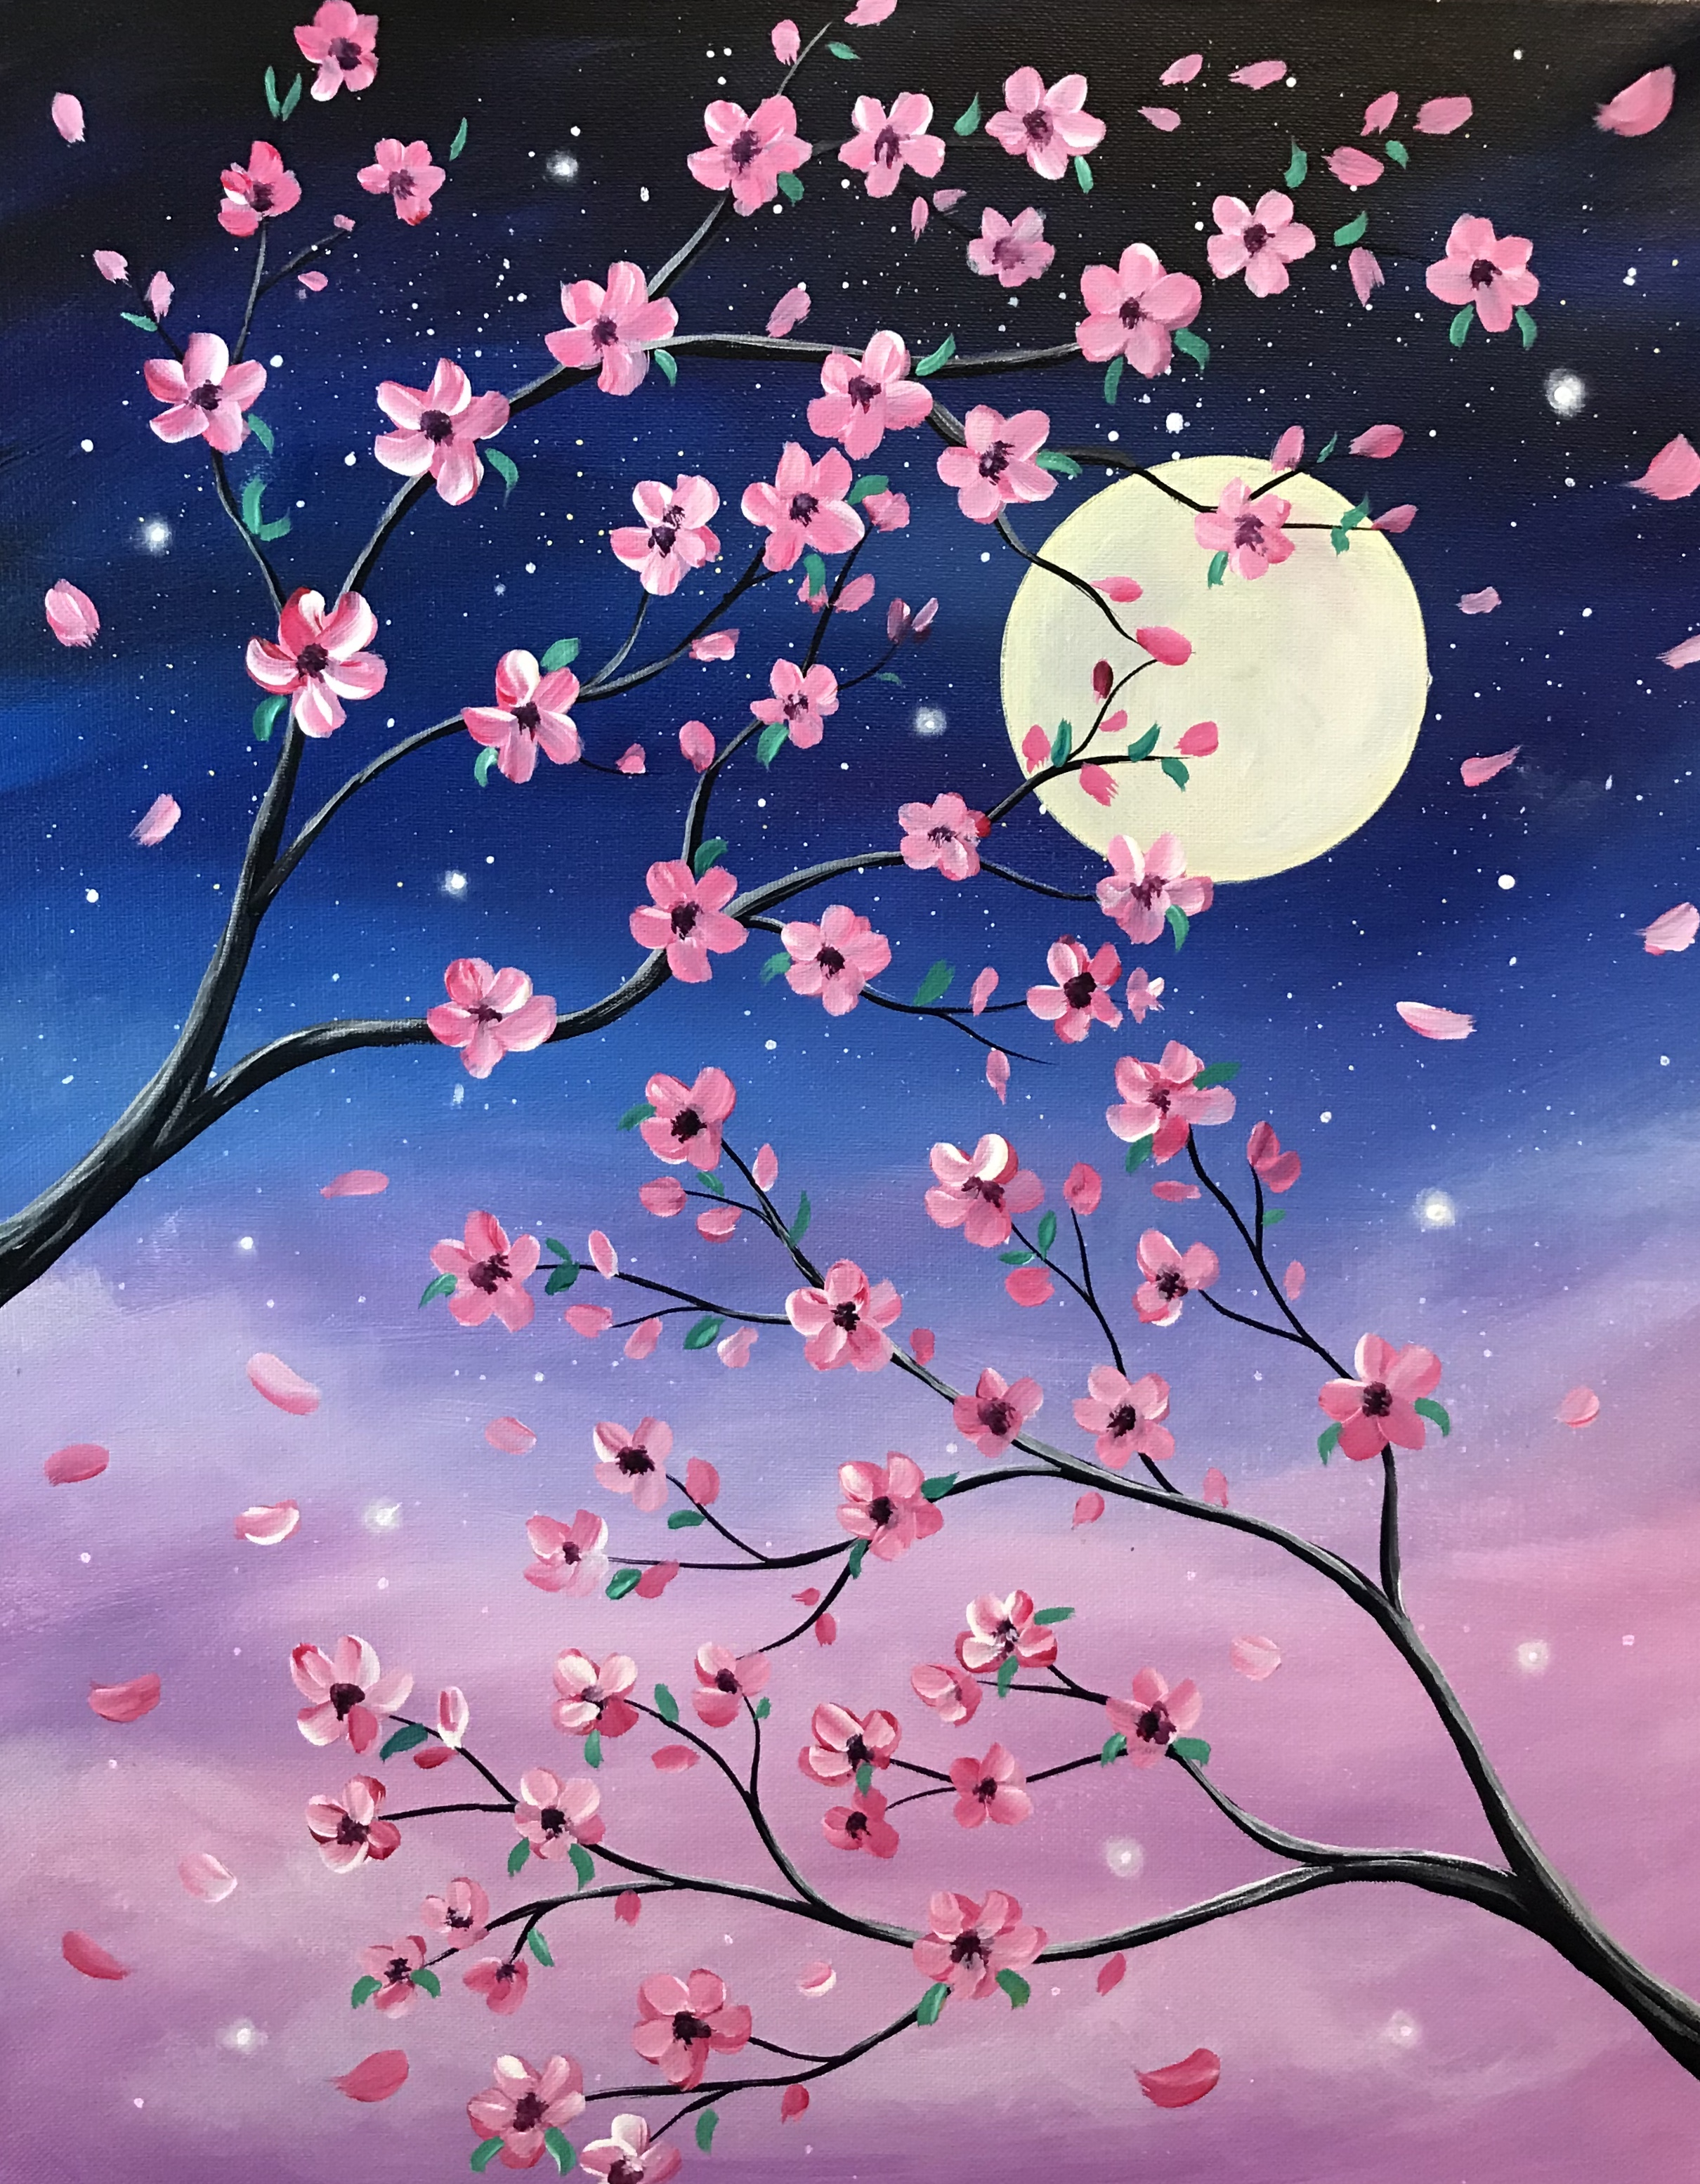 A Cherry Blossom Sky experience project by Yaymaker